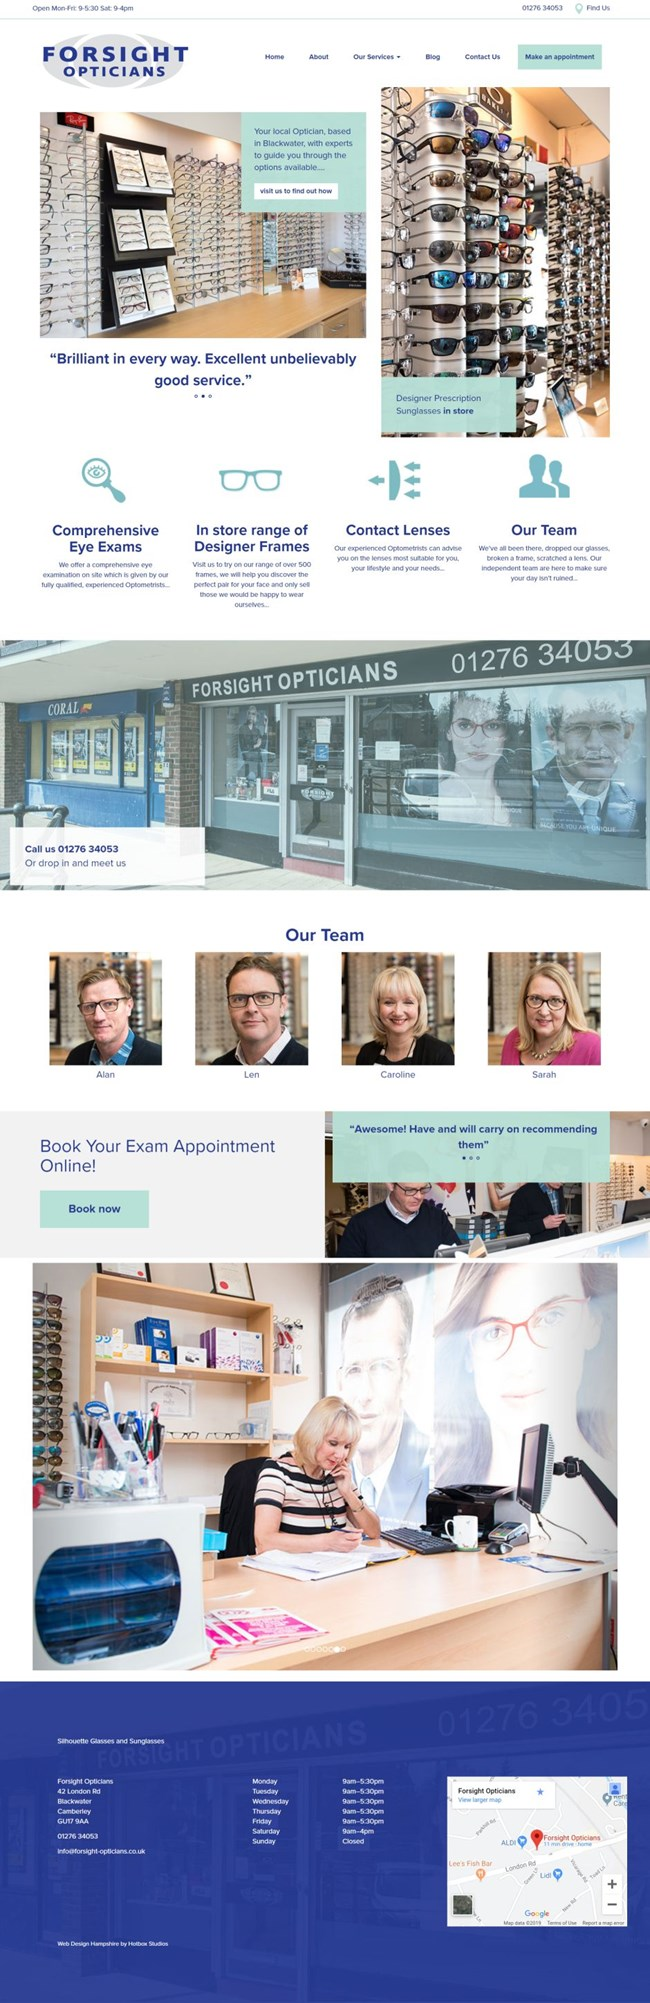 Forsight Opticians Wordpress Web Design SP001 Homepage